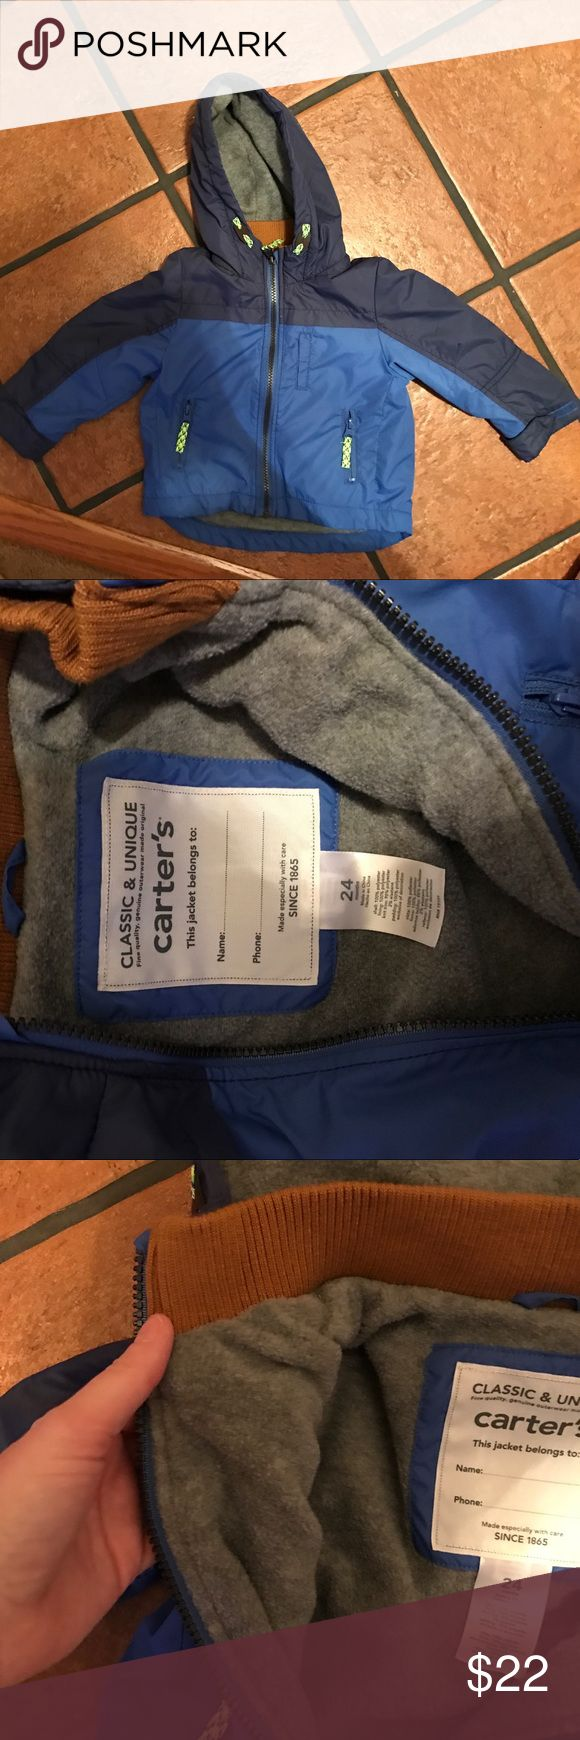 Carters fall or spring jacket. 24 Month Carters jacket washed and never worn.  Hood, fleece lining with a waterproof type exterior. Blue with gray interior.  Good for the car! Carter's Jackets & Coats